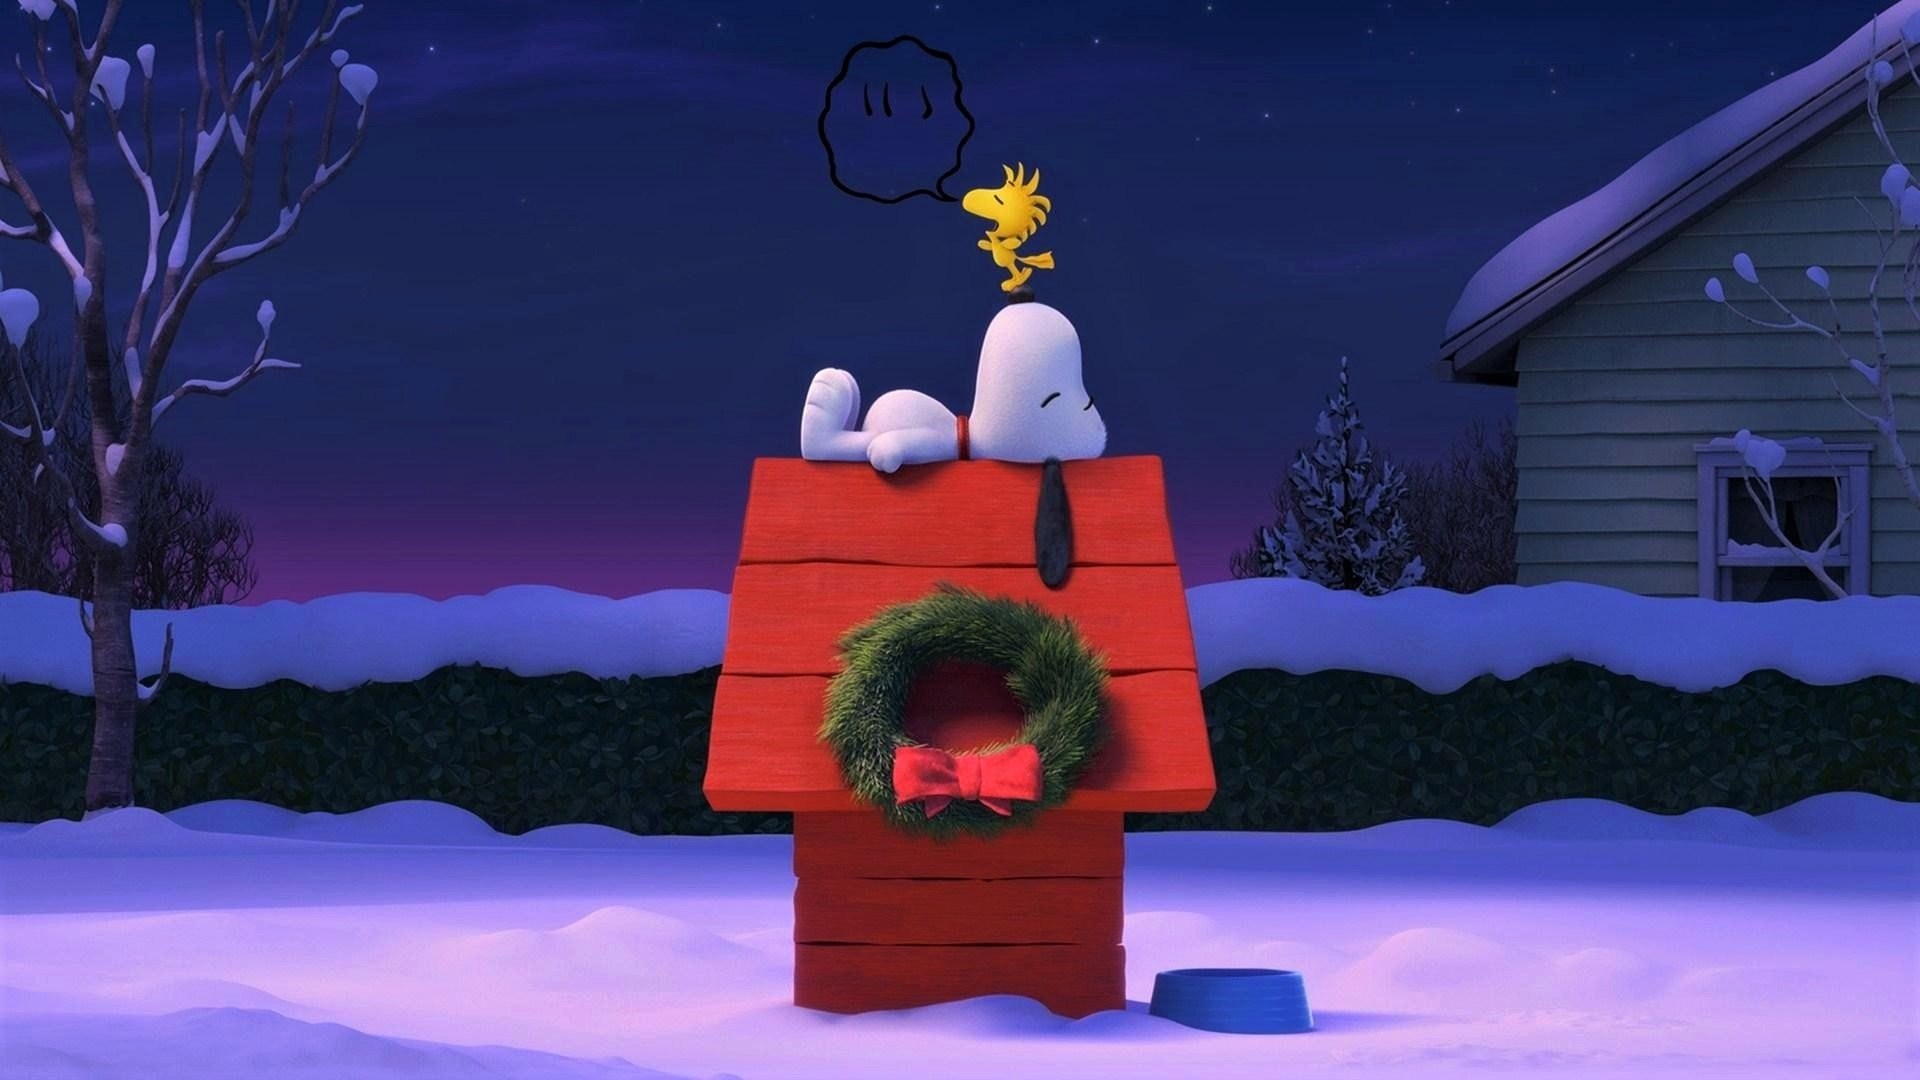 snoopy at christmastime full hd wallpaper and hintergrund. Black Bedroom Furniture Sets. Home Design Ideas